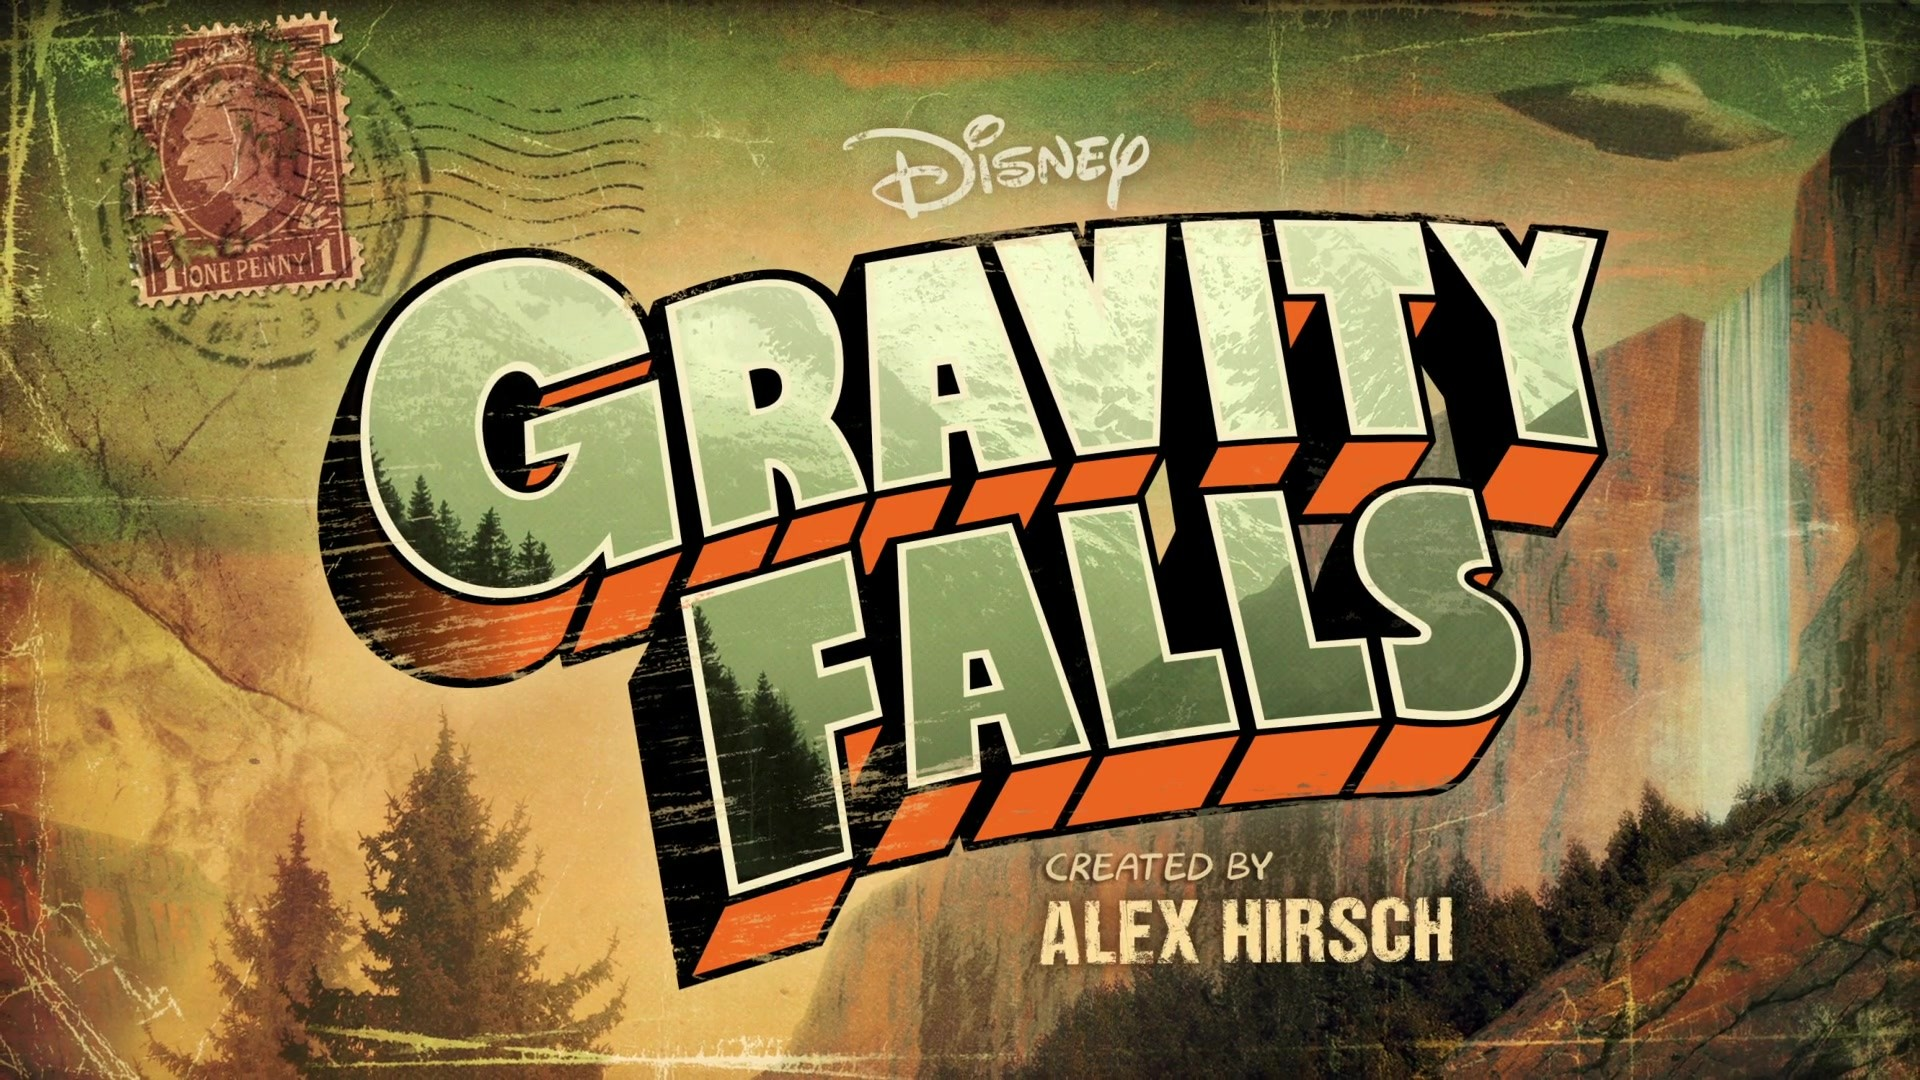 1920x1080 <b>Gravity Falls</b> Title Background by arberlezi on DeviantArt